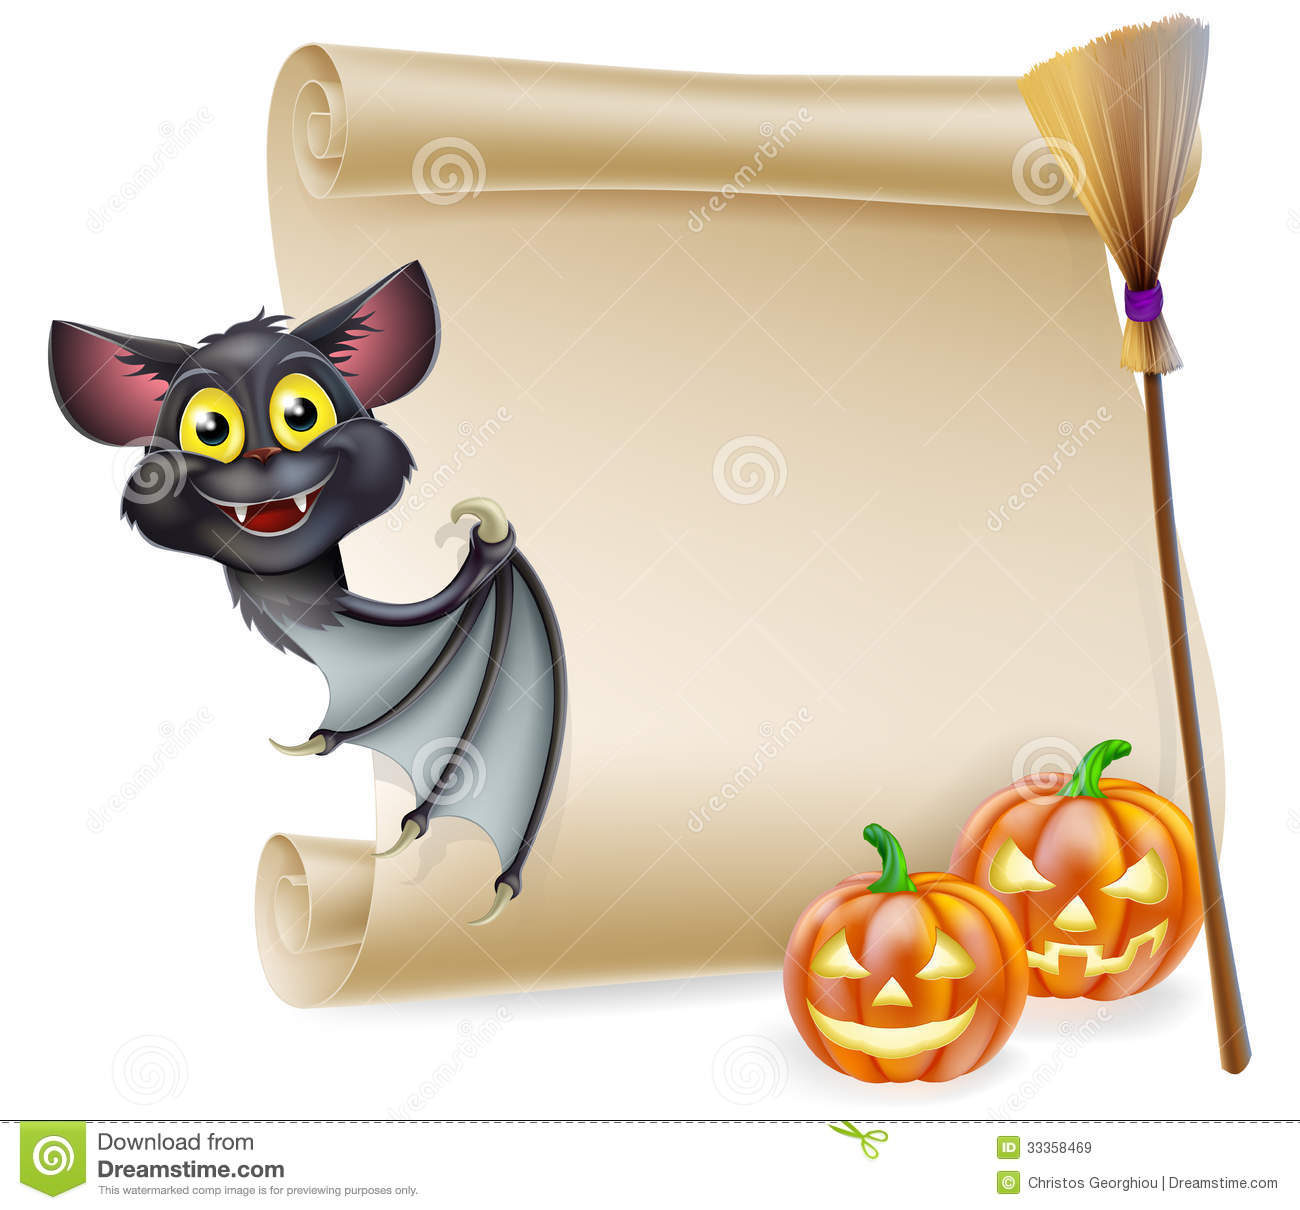 An illustration of a halloween scroll with space for your message and